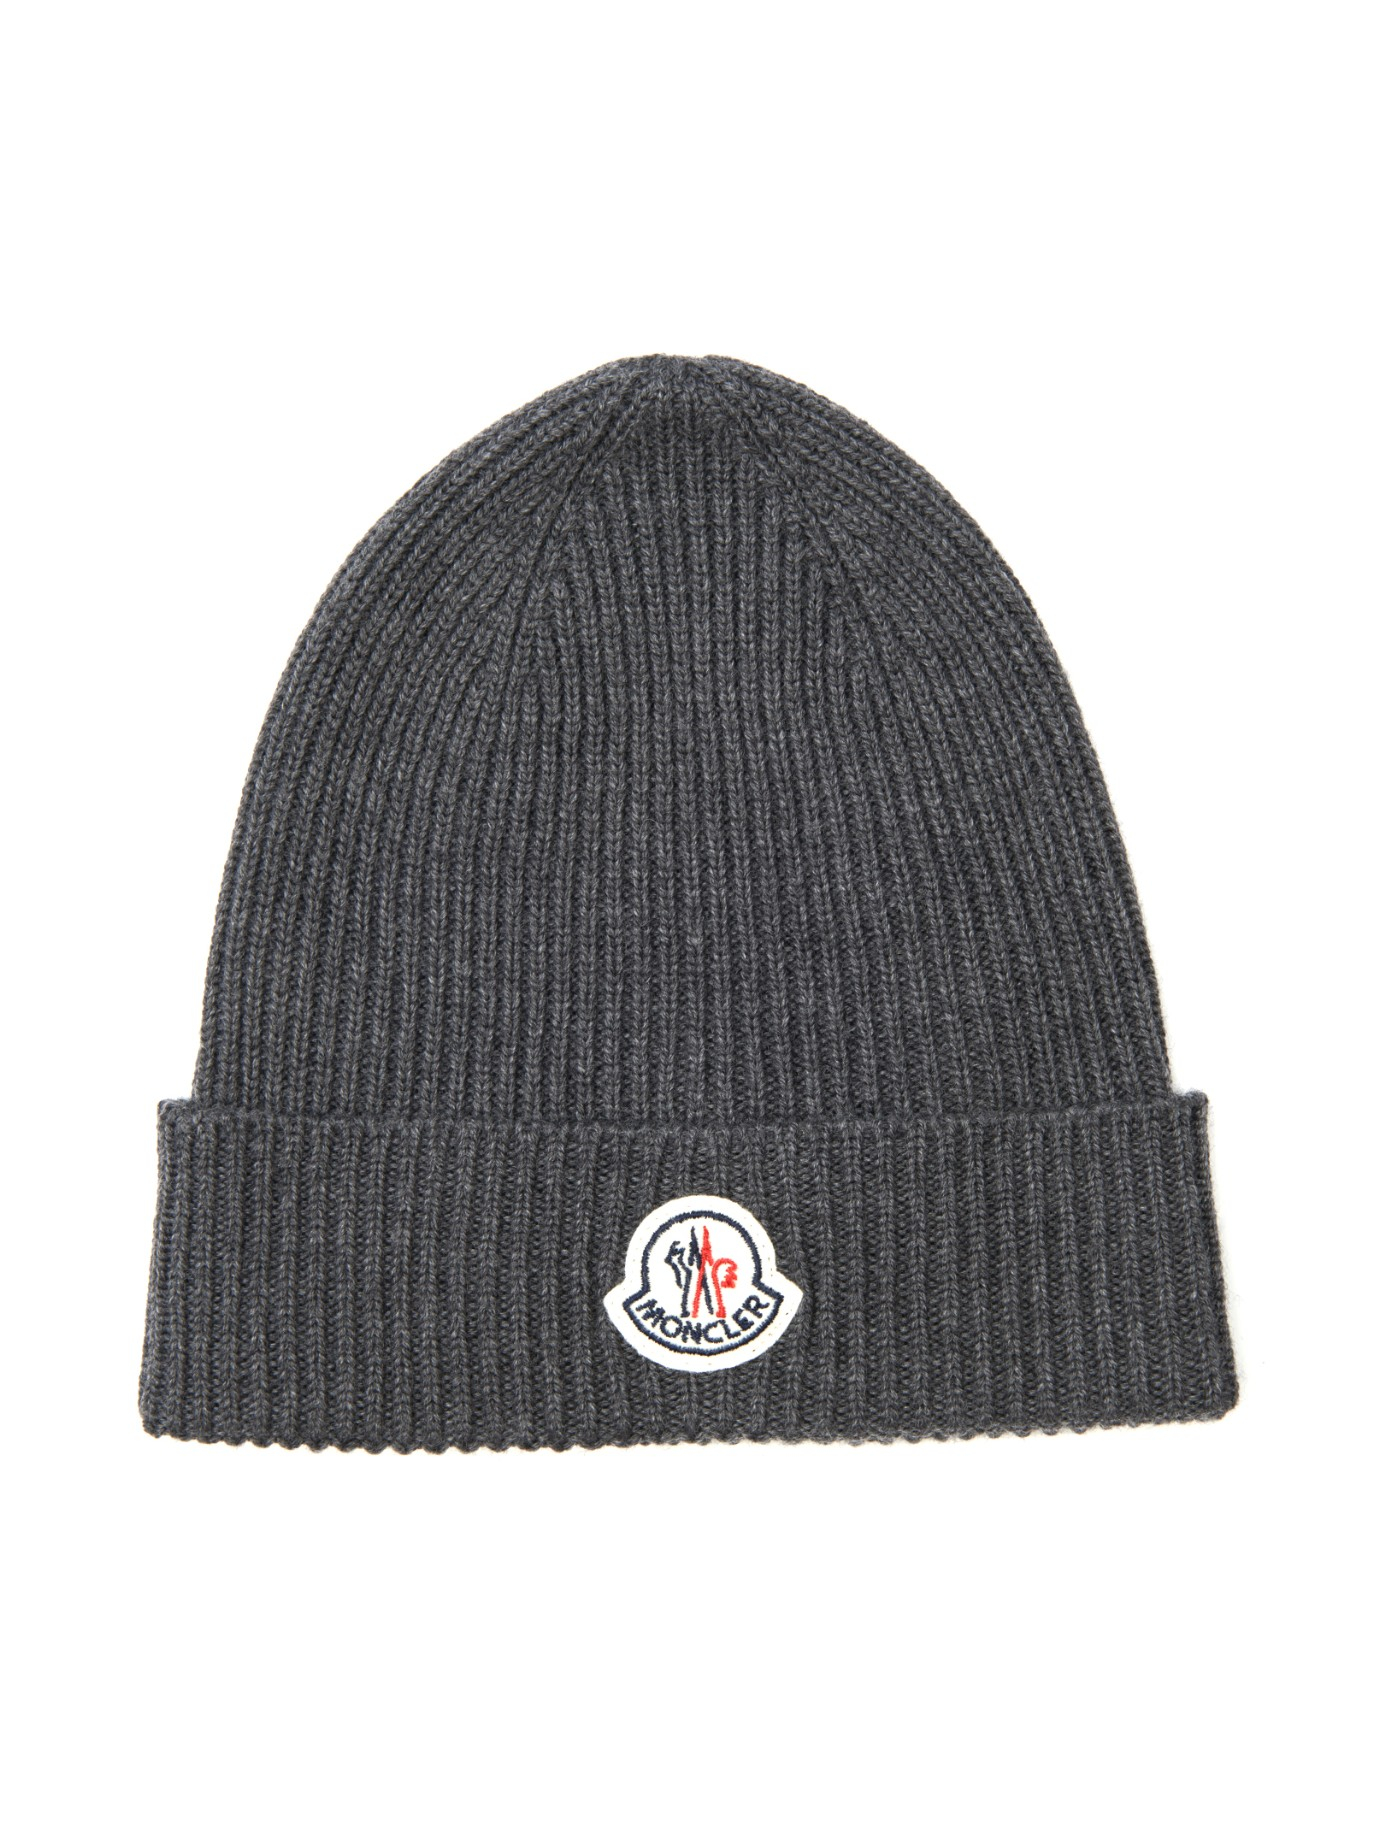 fe085581092 Moncler Ribbed-Knit Wool Beanie Hat in Gray for Men - Lyst